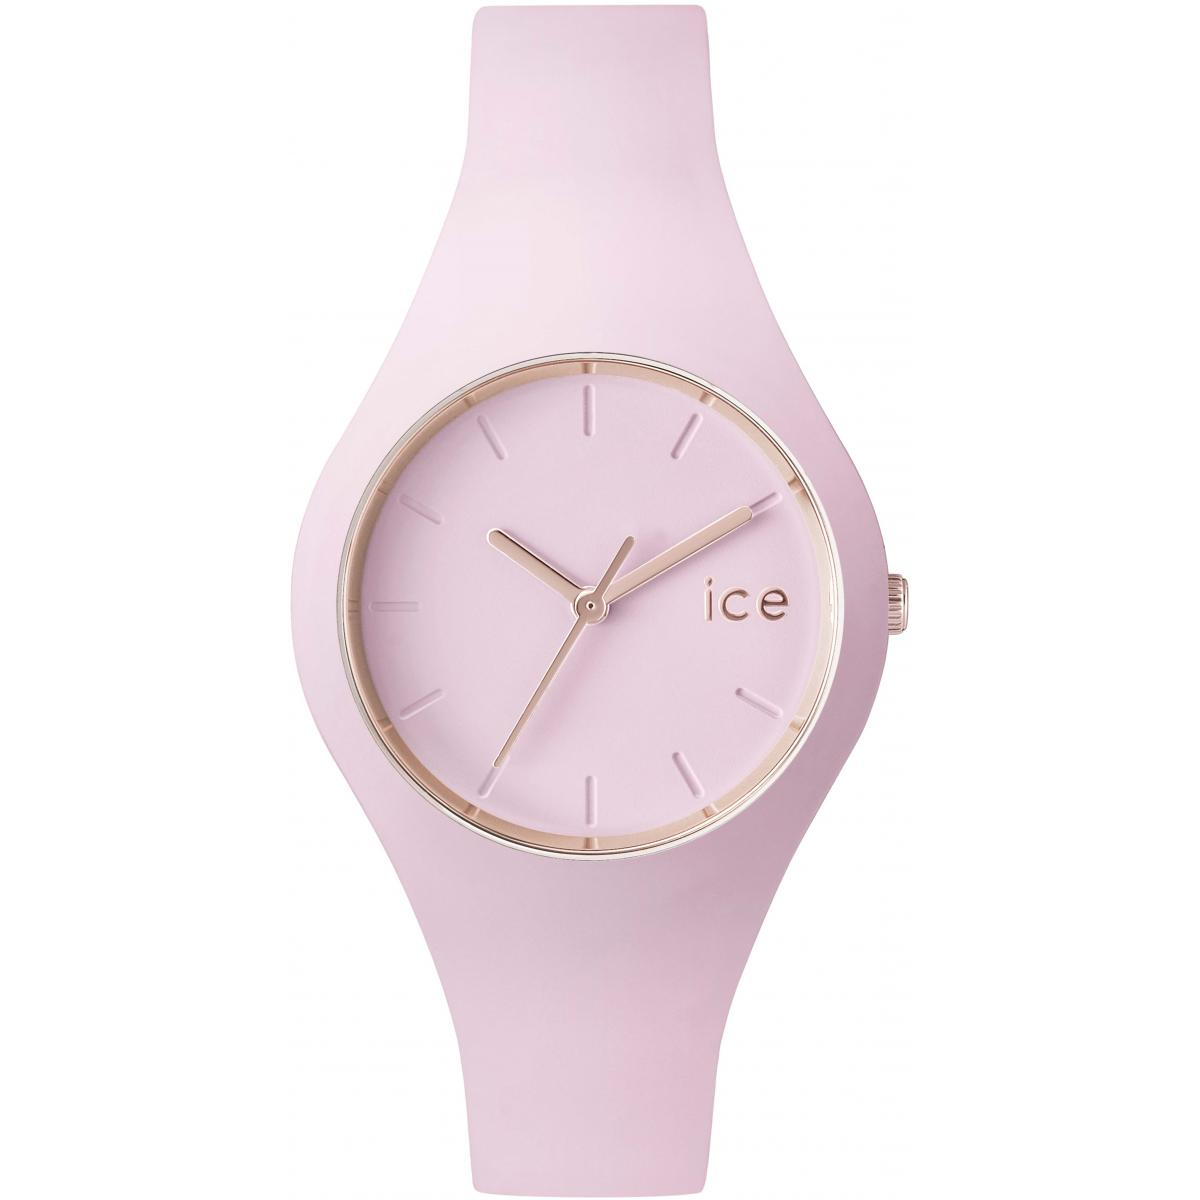 Montre Ice Watch ICE.GL.PL.S.S.14 - Montre Glam Pink Lady Femme